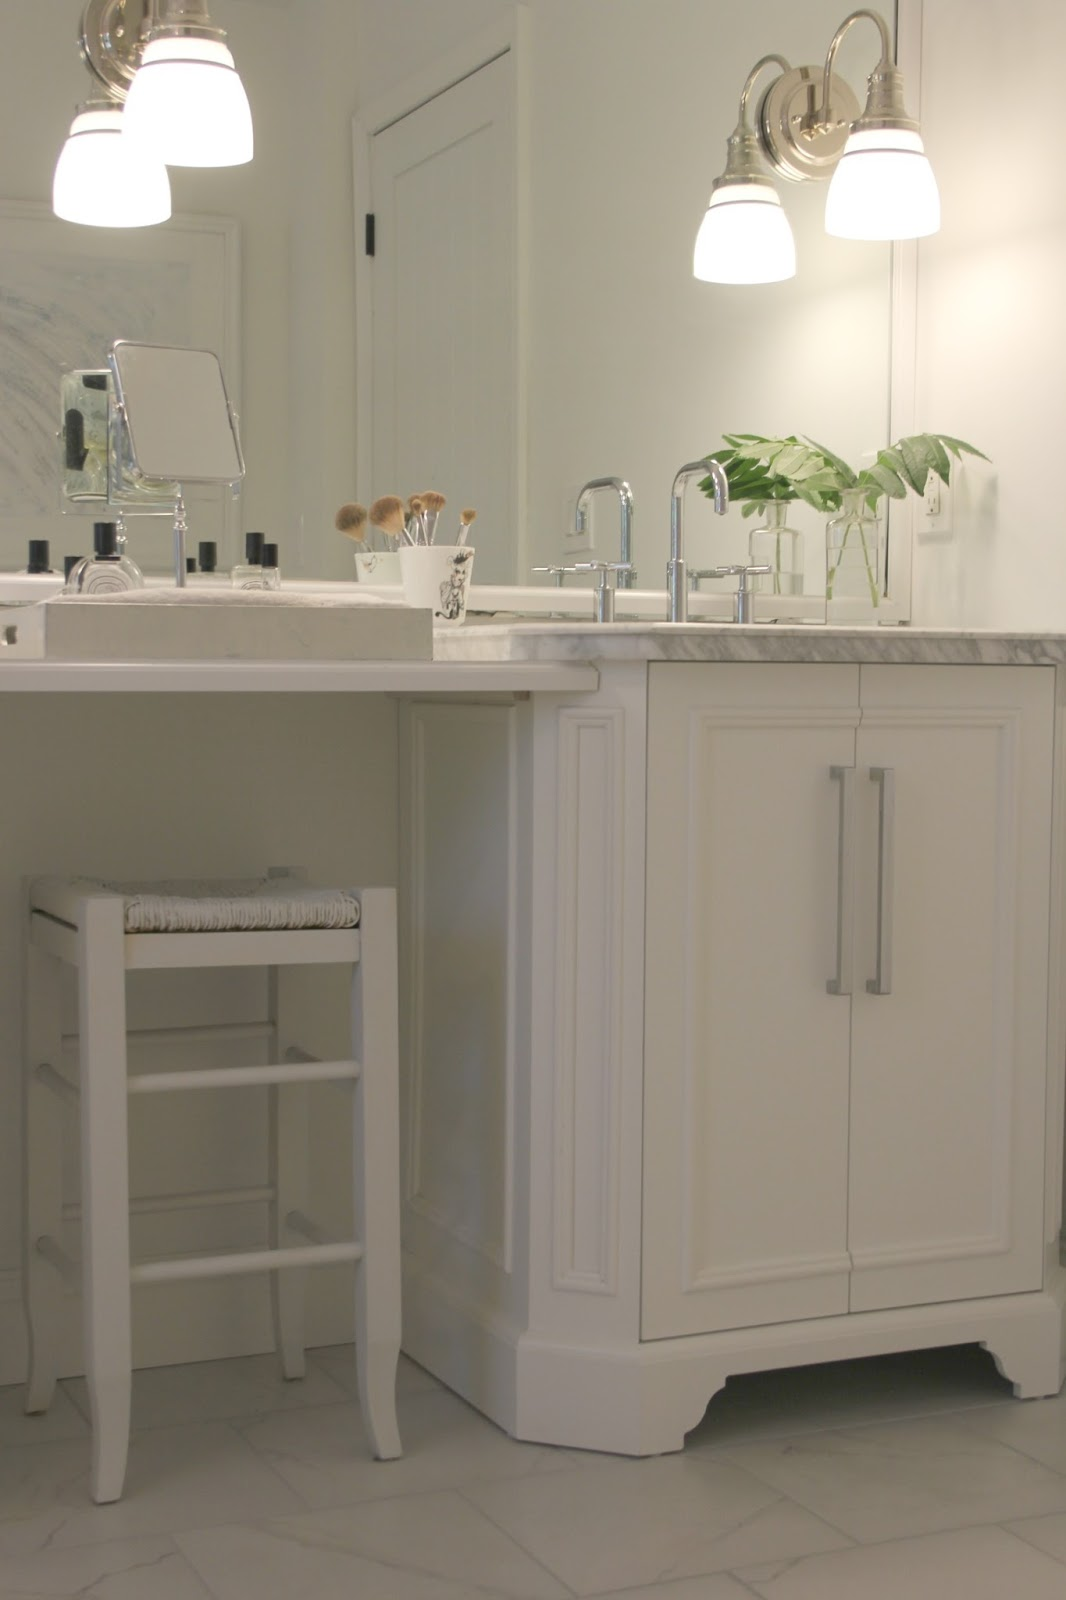 White vanities with carrara marble tops and Kohler Purist bathroom faucets. Come see renovation photos in Before & After: My Home Renovation.